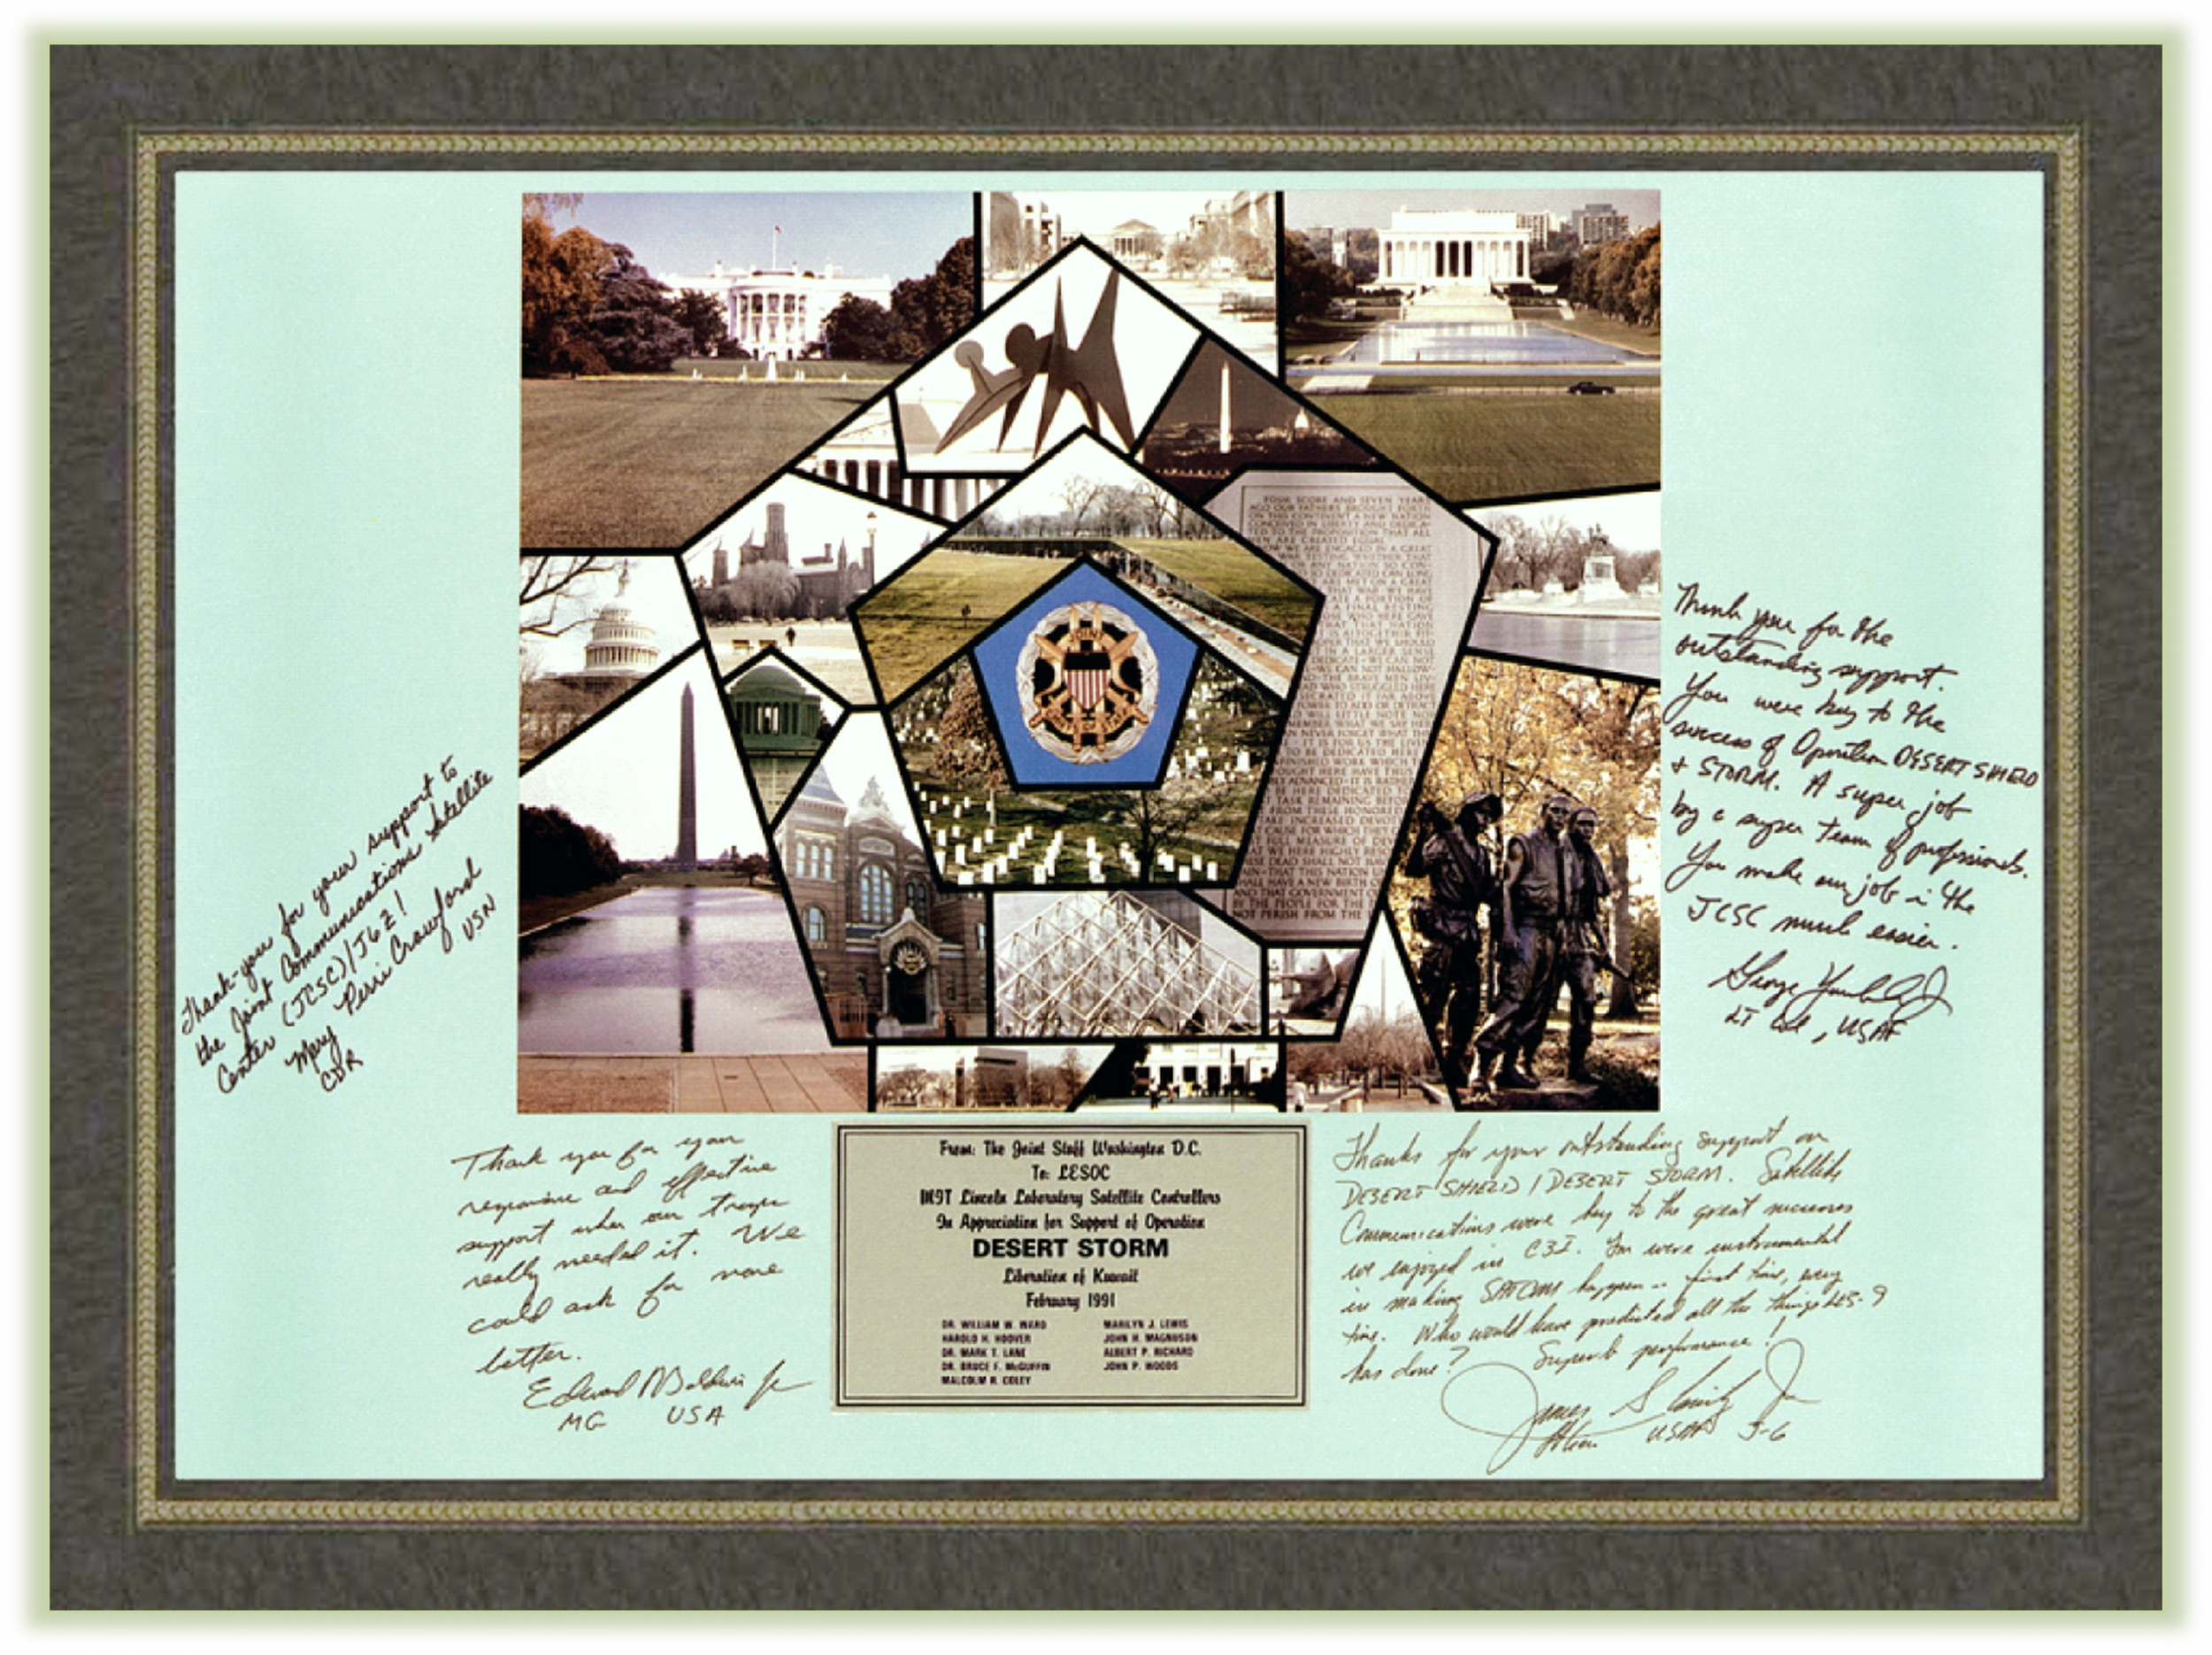 A photo of an award plaque with signatures on it for the Lab's work to support Desert Storm.